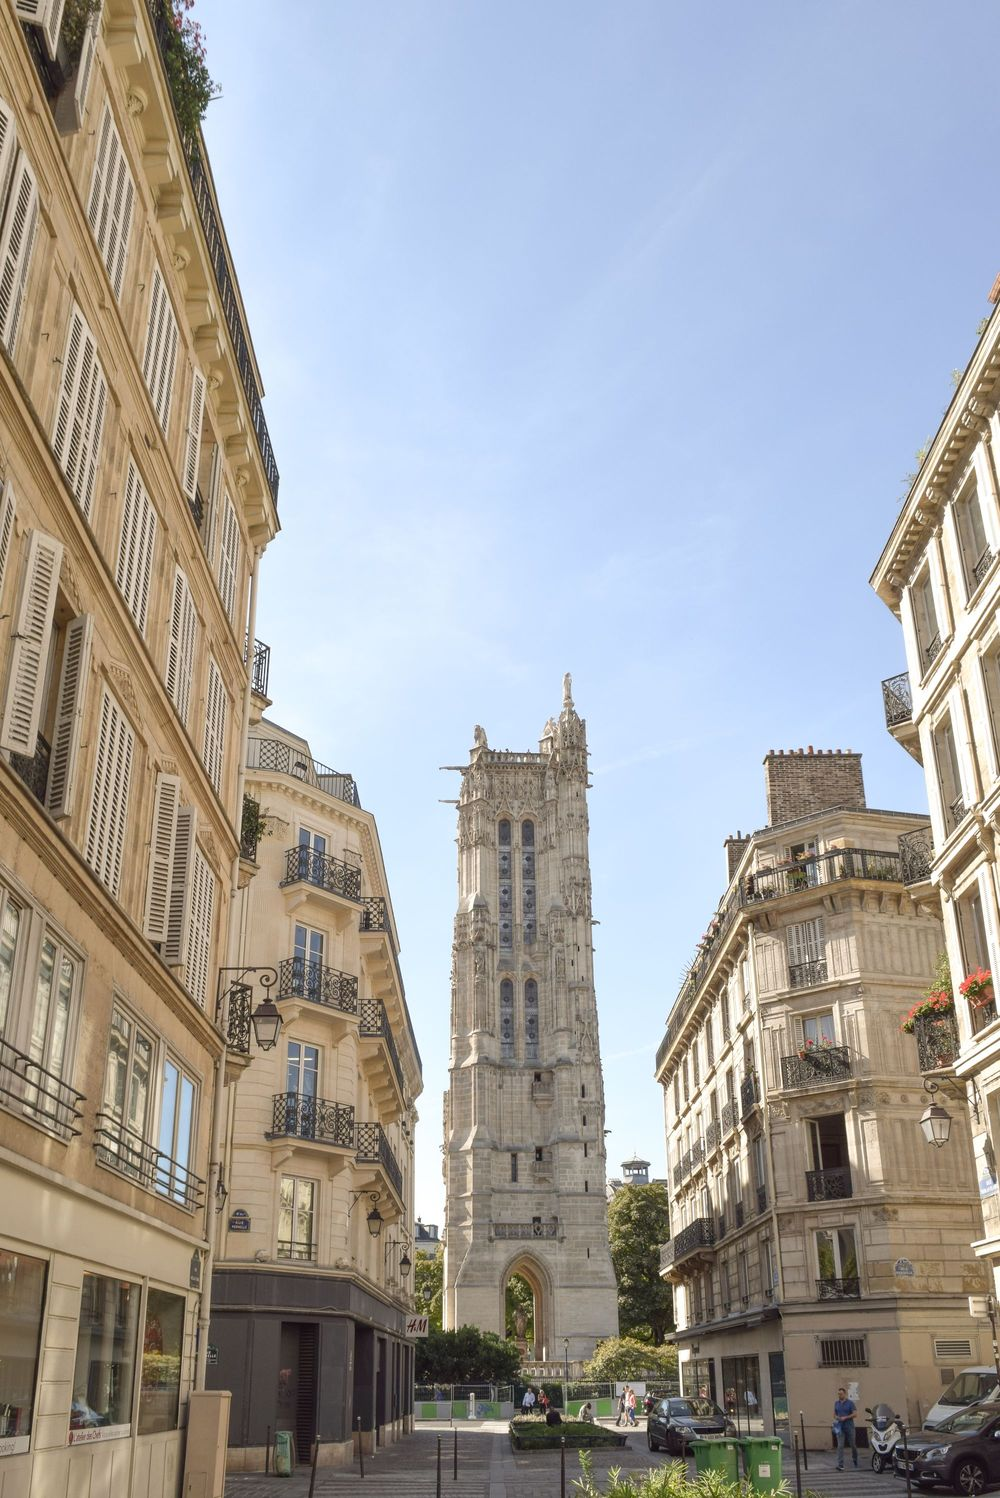 View of the Tour Saint Jacques from Rue Nicolas Flamel, Paris